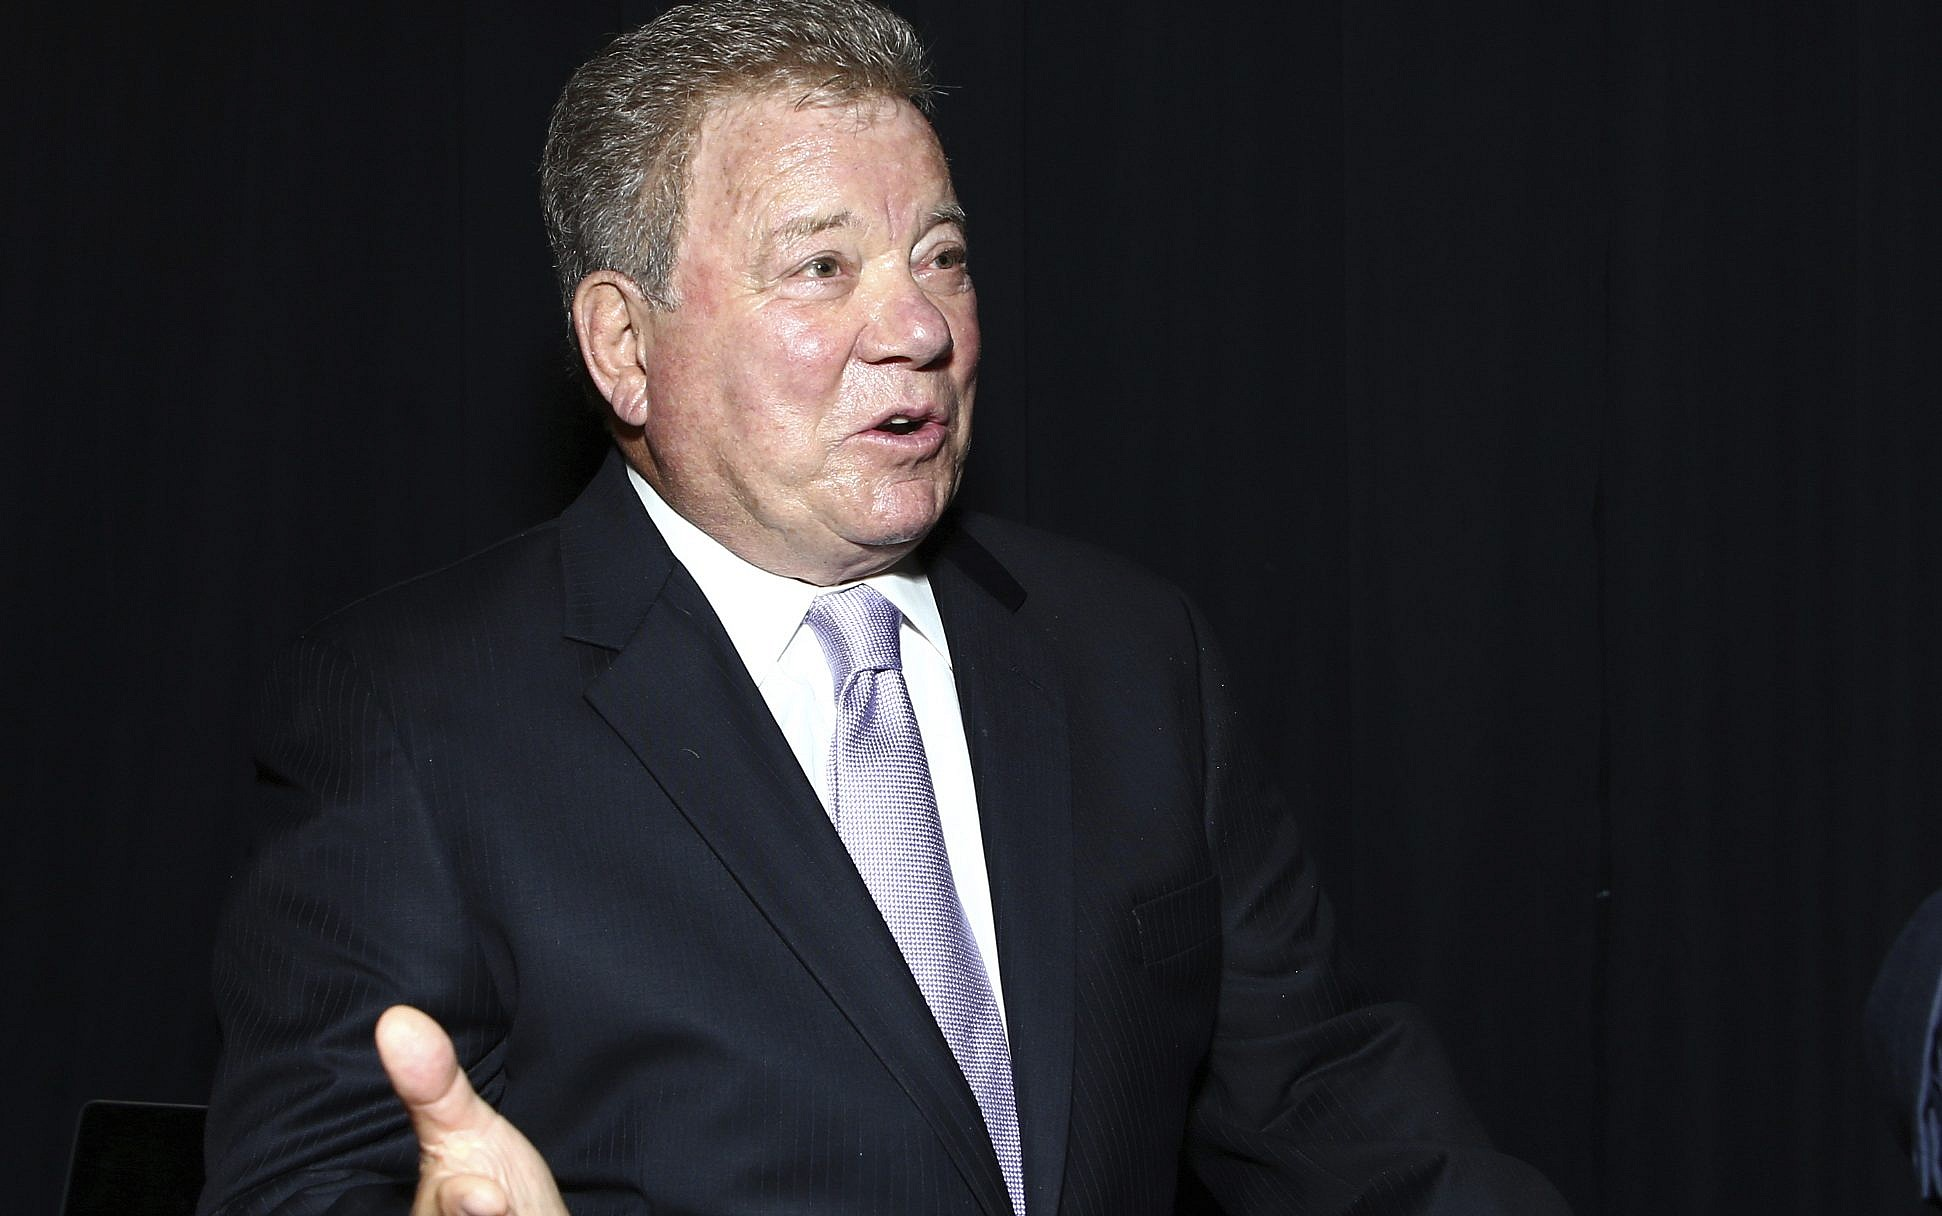 william shatner experienced a great deal of anti